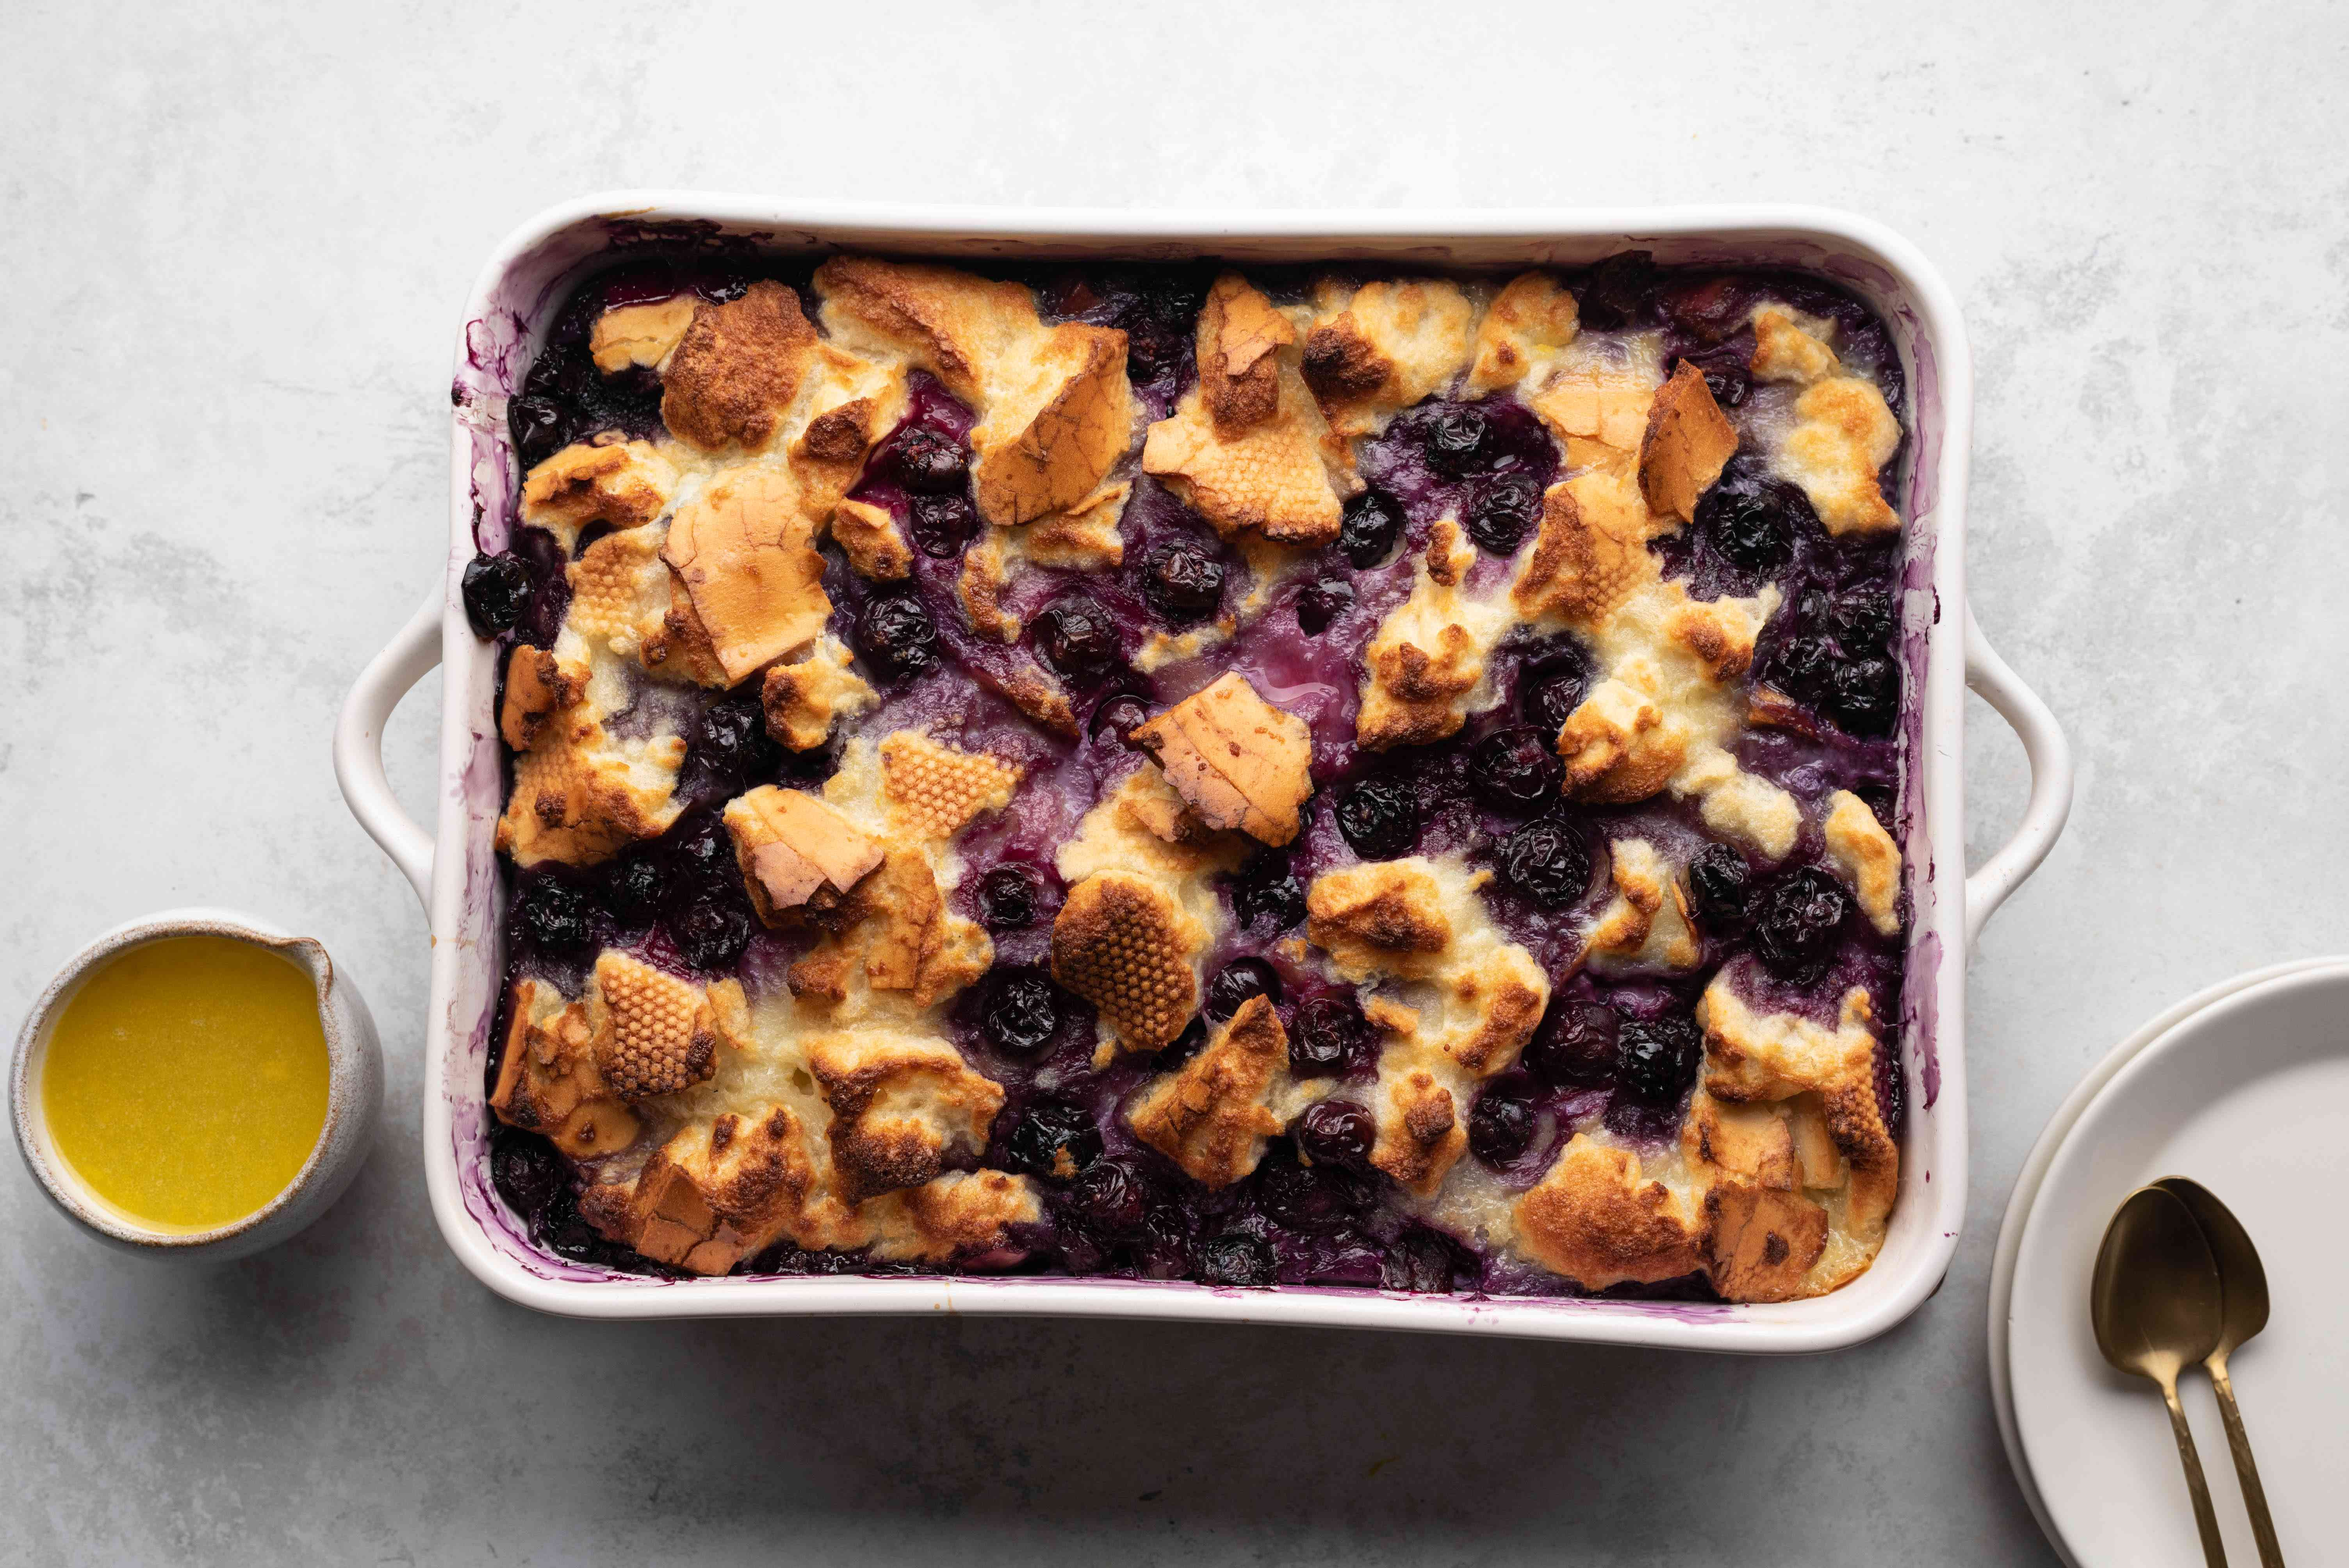 Blueberry Bread Pudding in a baking dish with lemon sauce on the side